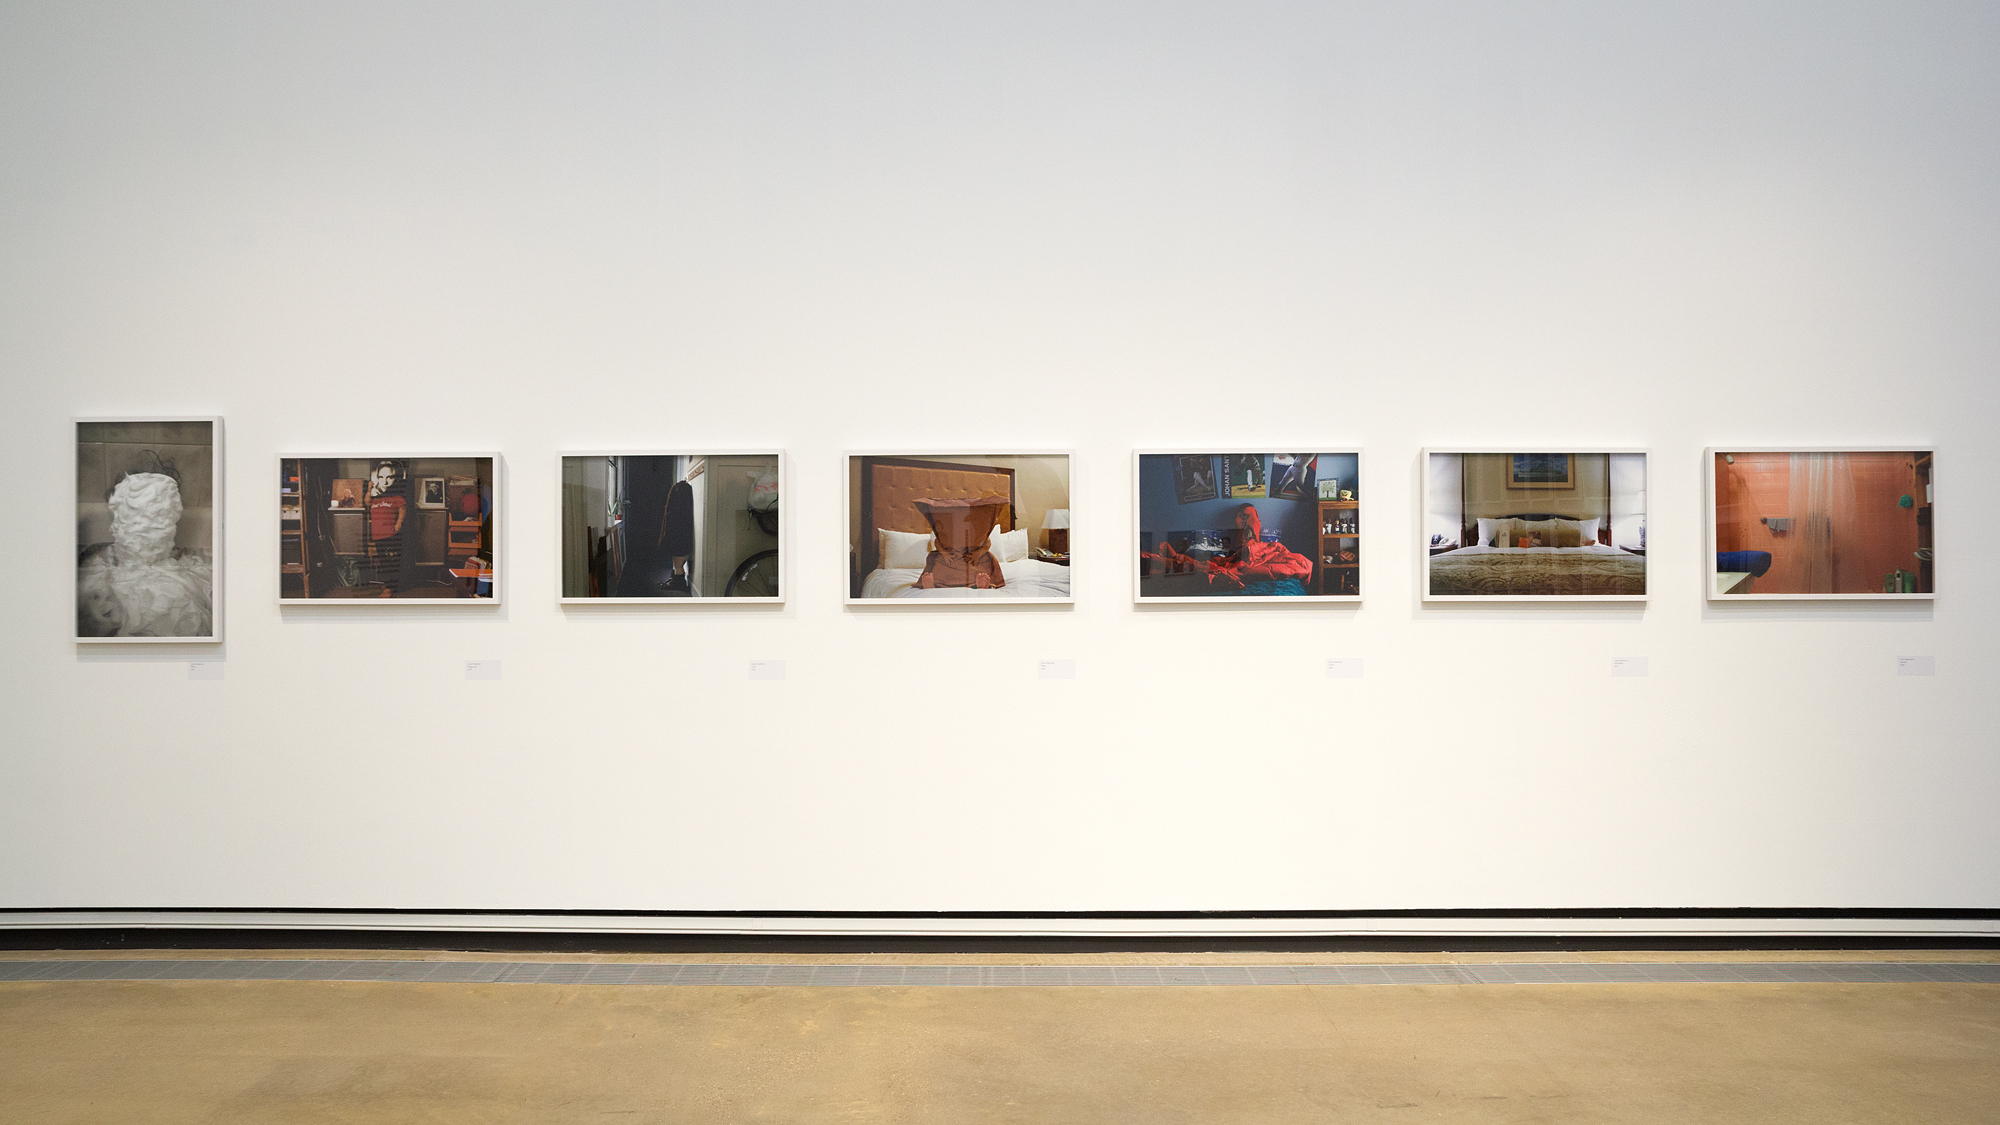 Installation view of Anti-Self-Portraits (2005 - 2008)